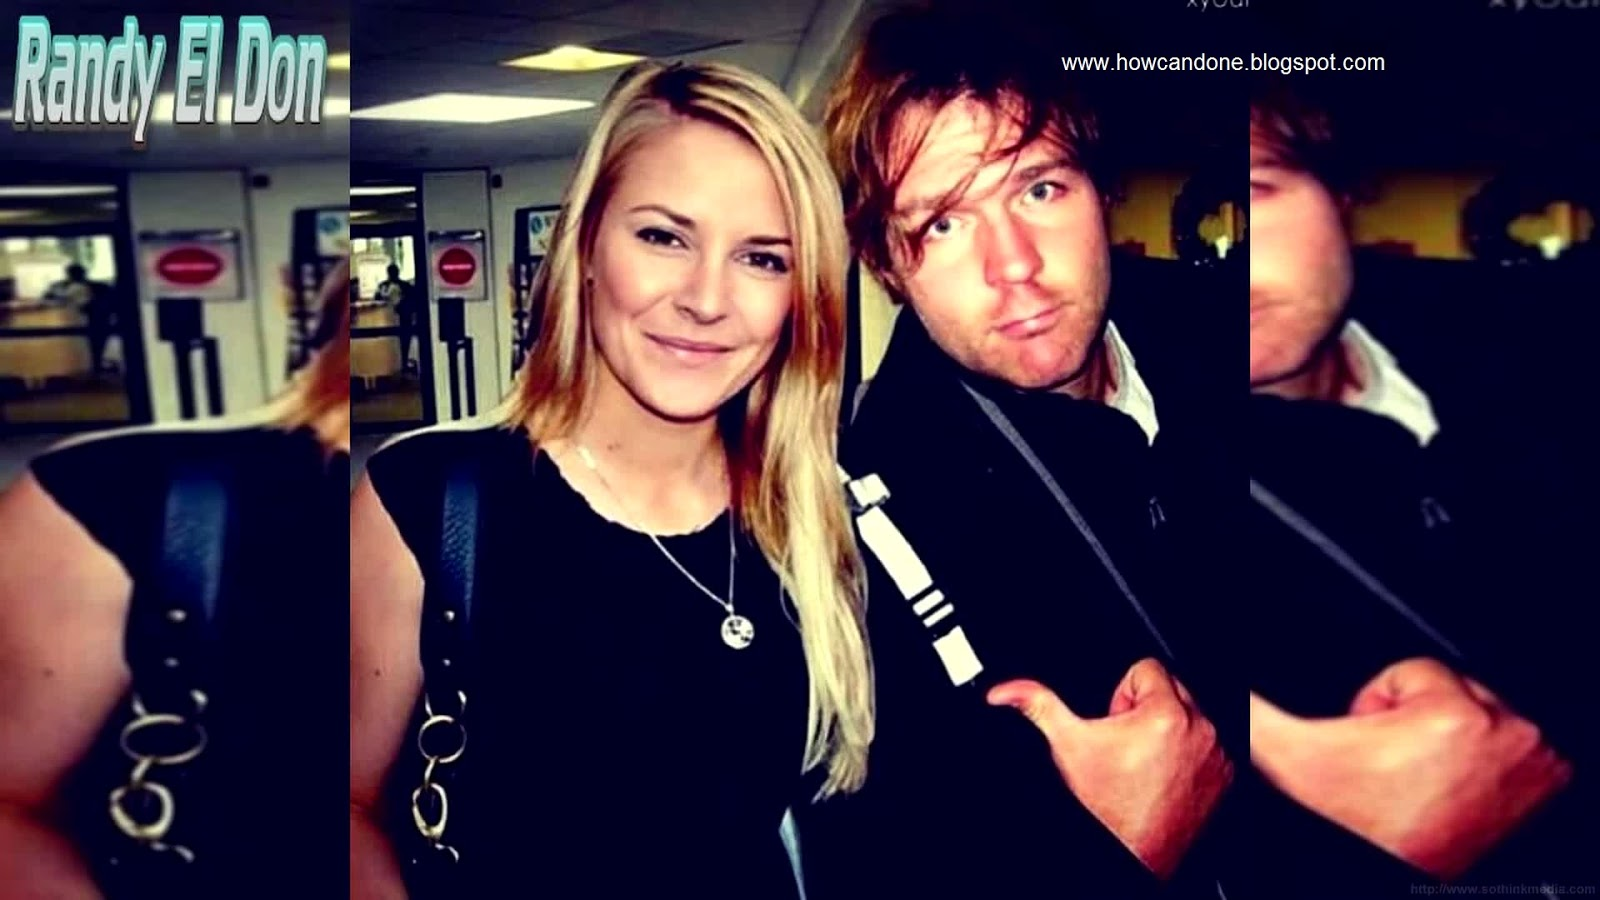 Wwe Superstars With Wife Pictures  How Can Done-3701